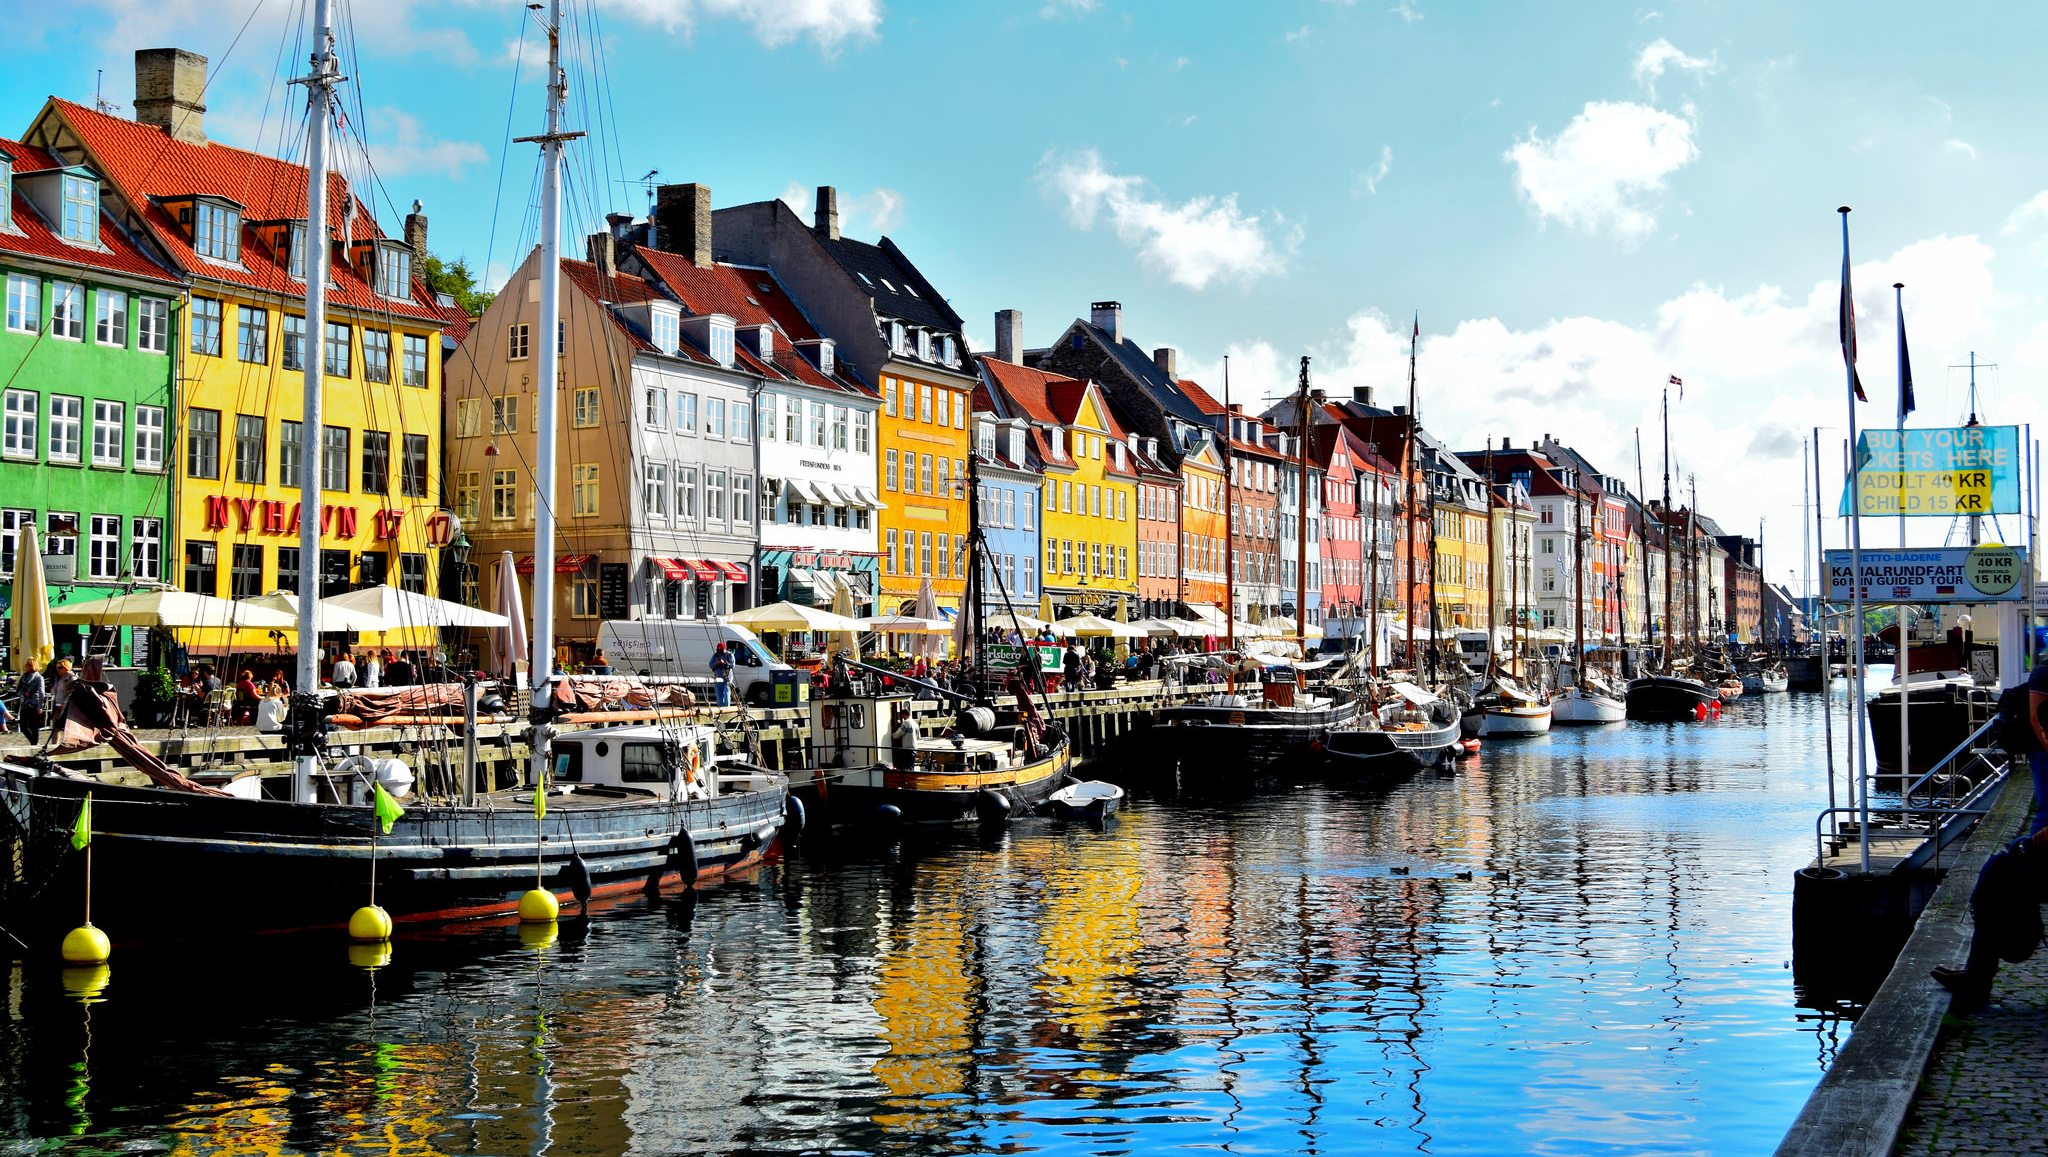 Colourful houses flank the river in the Nyhavn, Copenhagen